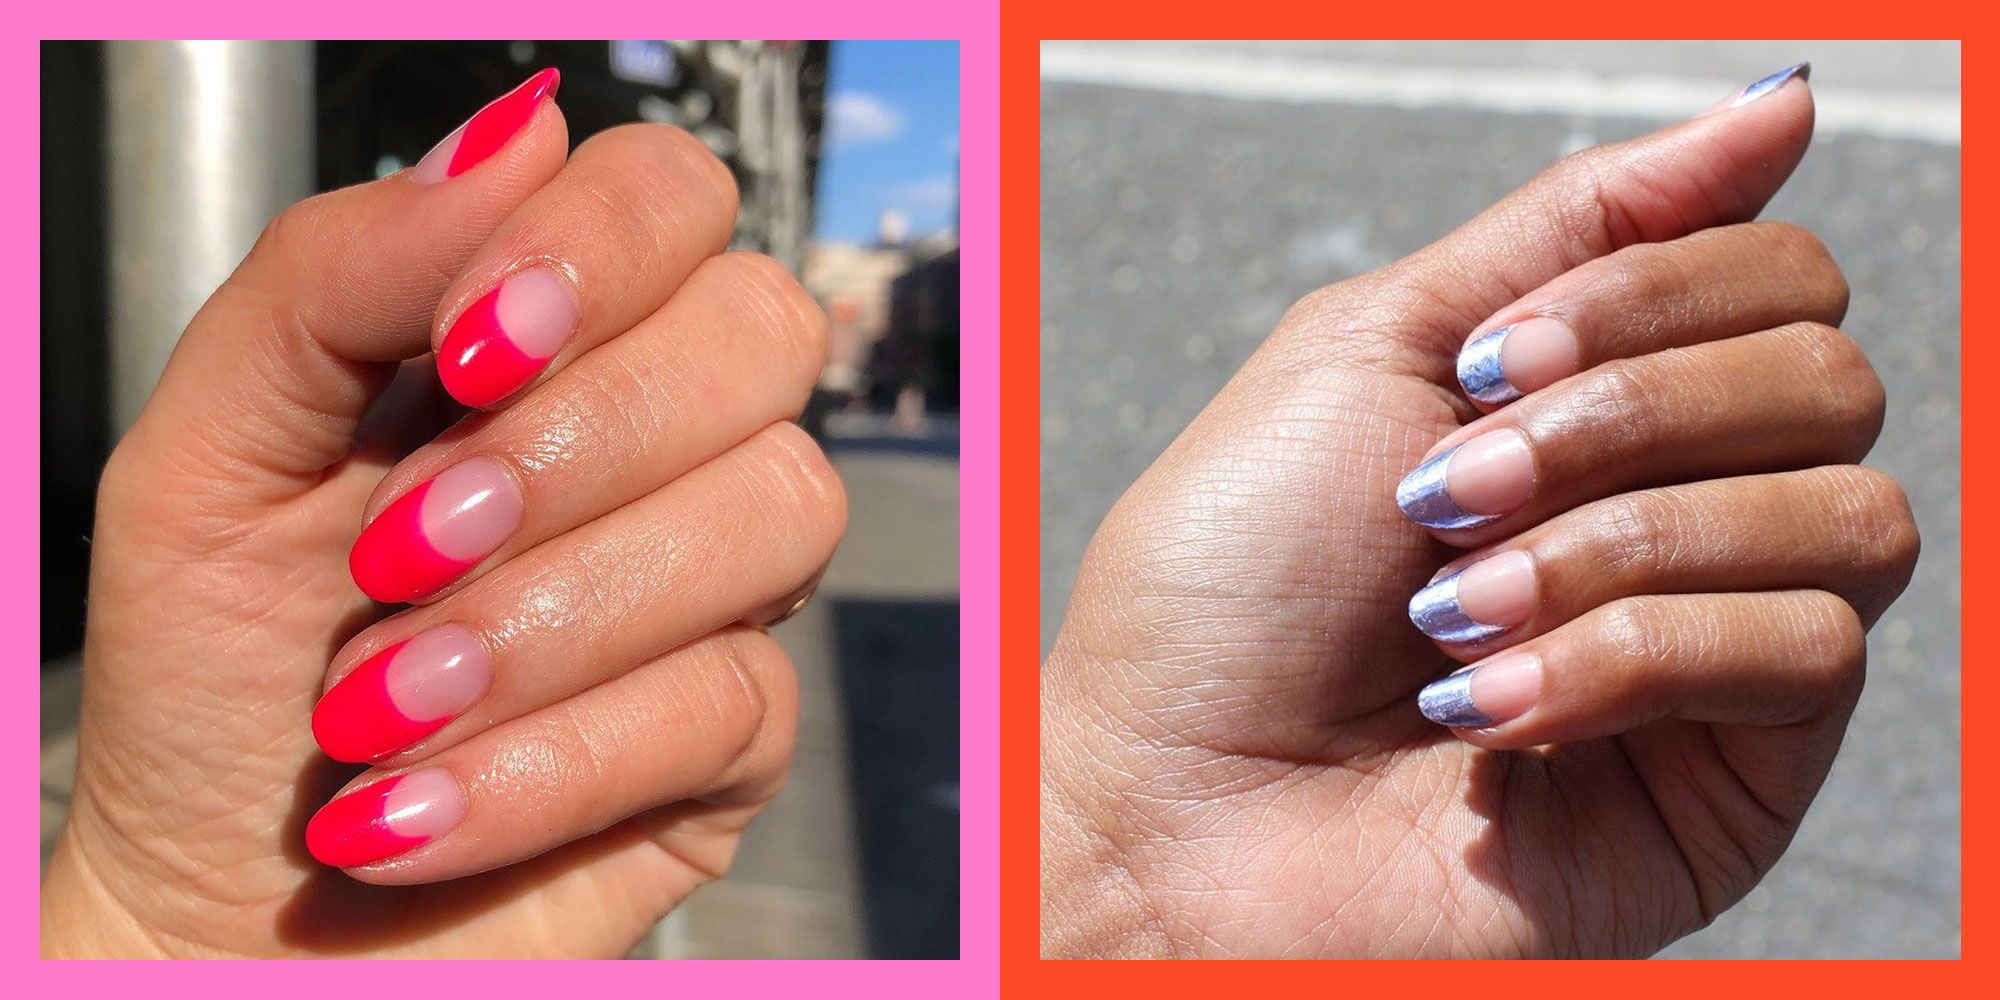 20 Best French Manicure Ideas That Are Actually Cute For 2020